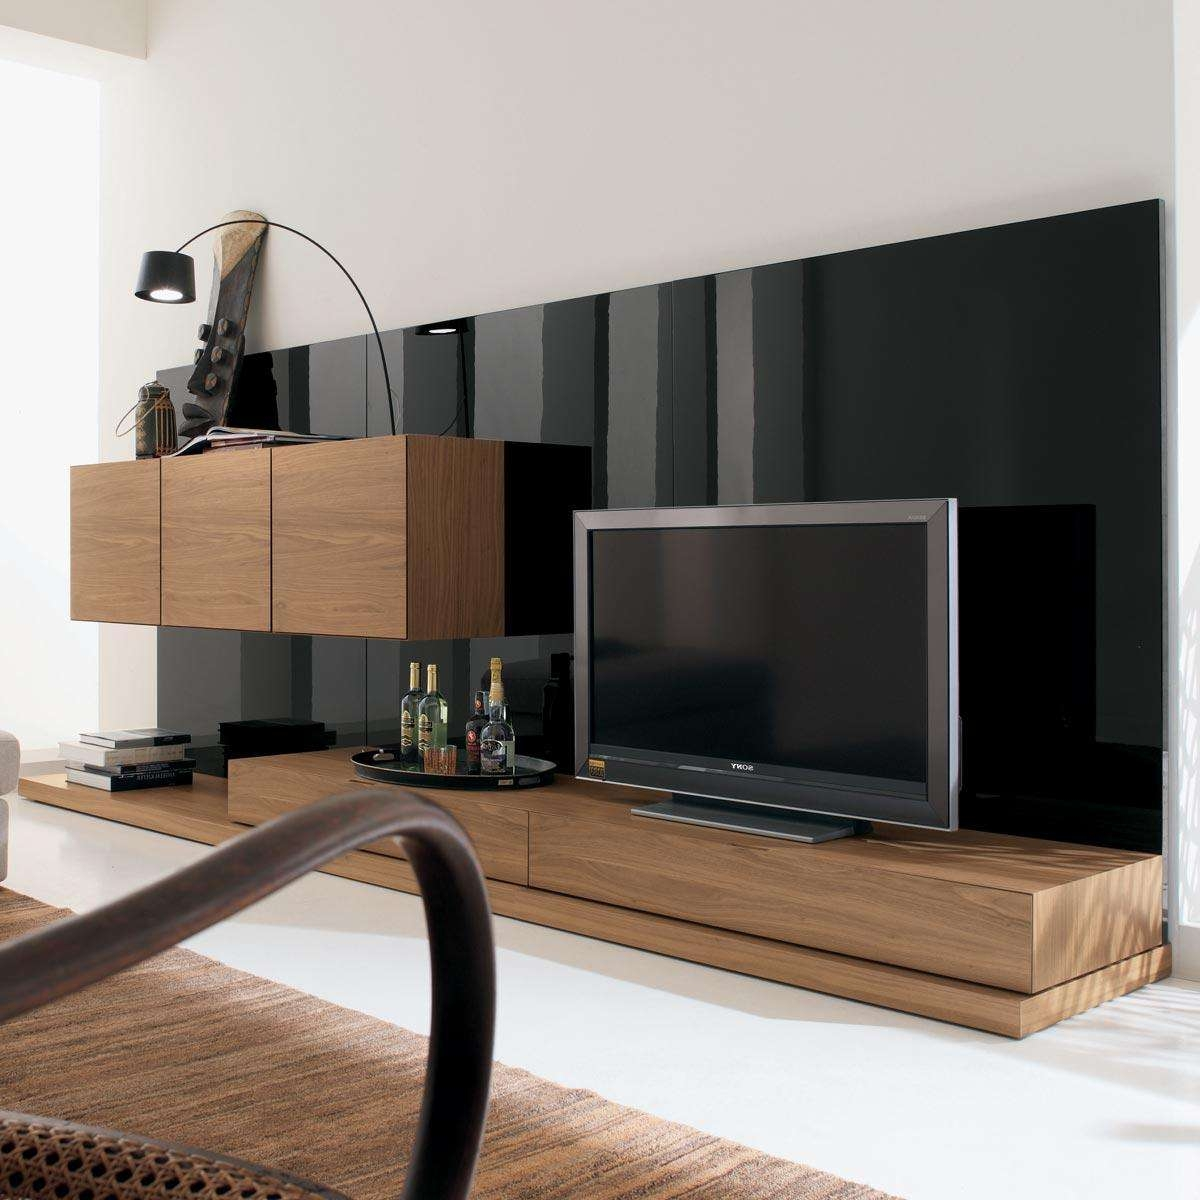 Modern Nature Wood Big Screen Tv Stand Wall Mounted Living Room For Modular Tv Stands Furniture (View 7 of 15)